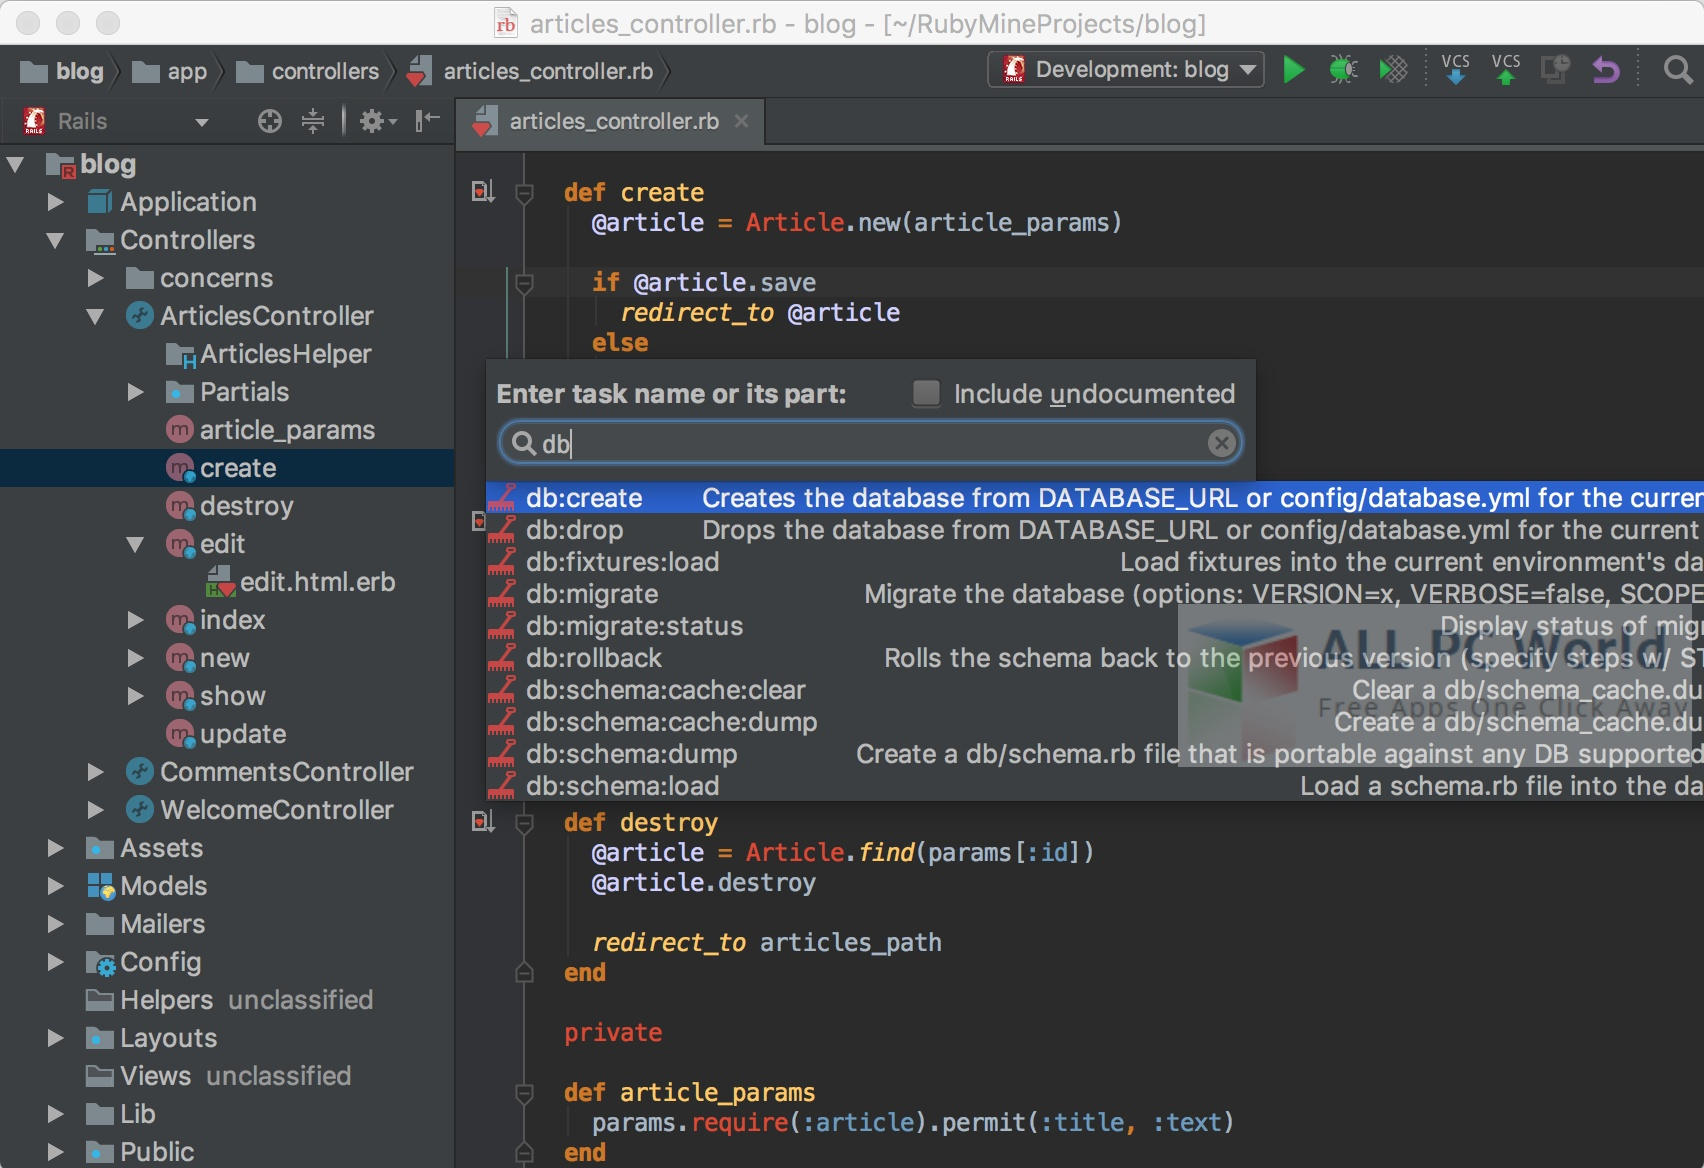 JetBrains RubyMine 2017 Review